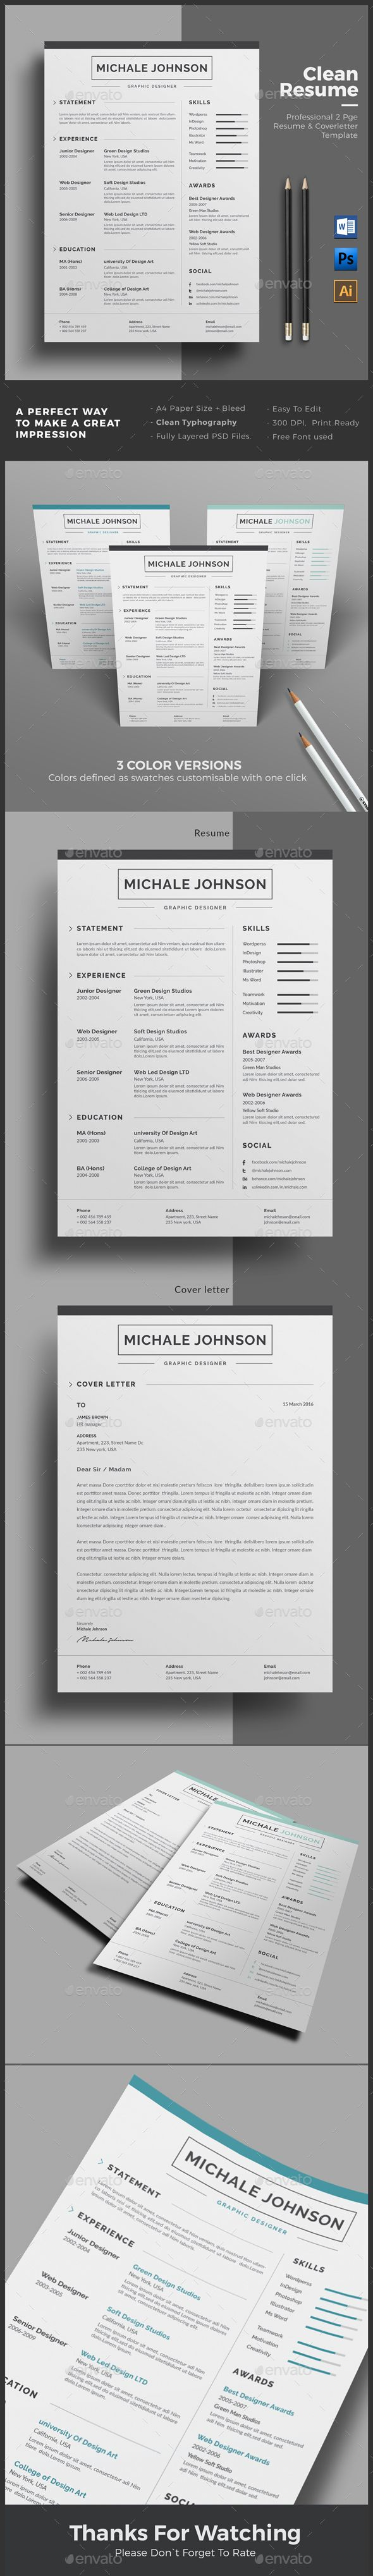 Word Cv Templates 2007%0A Resume Resume Word Template   CV Template with super clean and modern look   Clean Resume